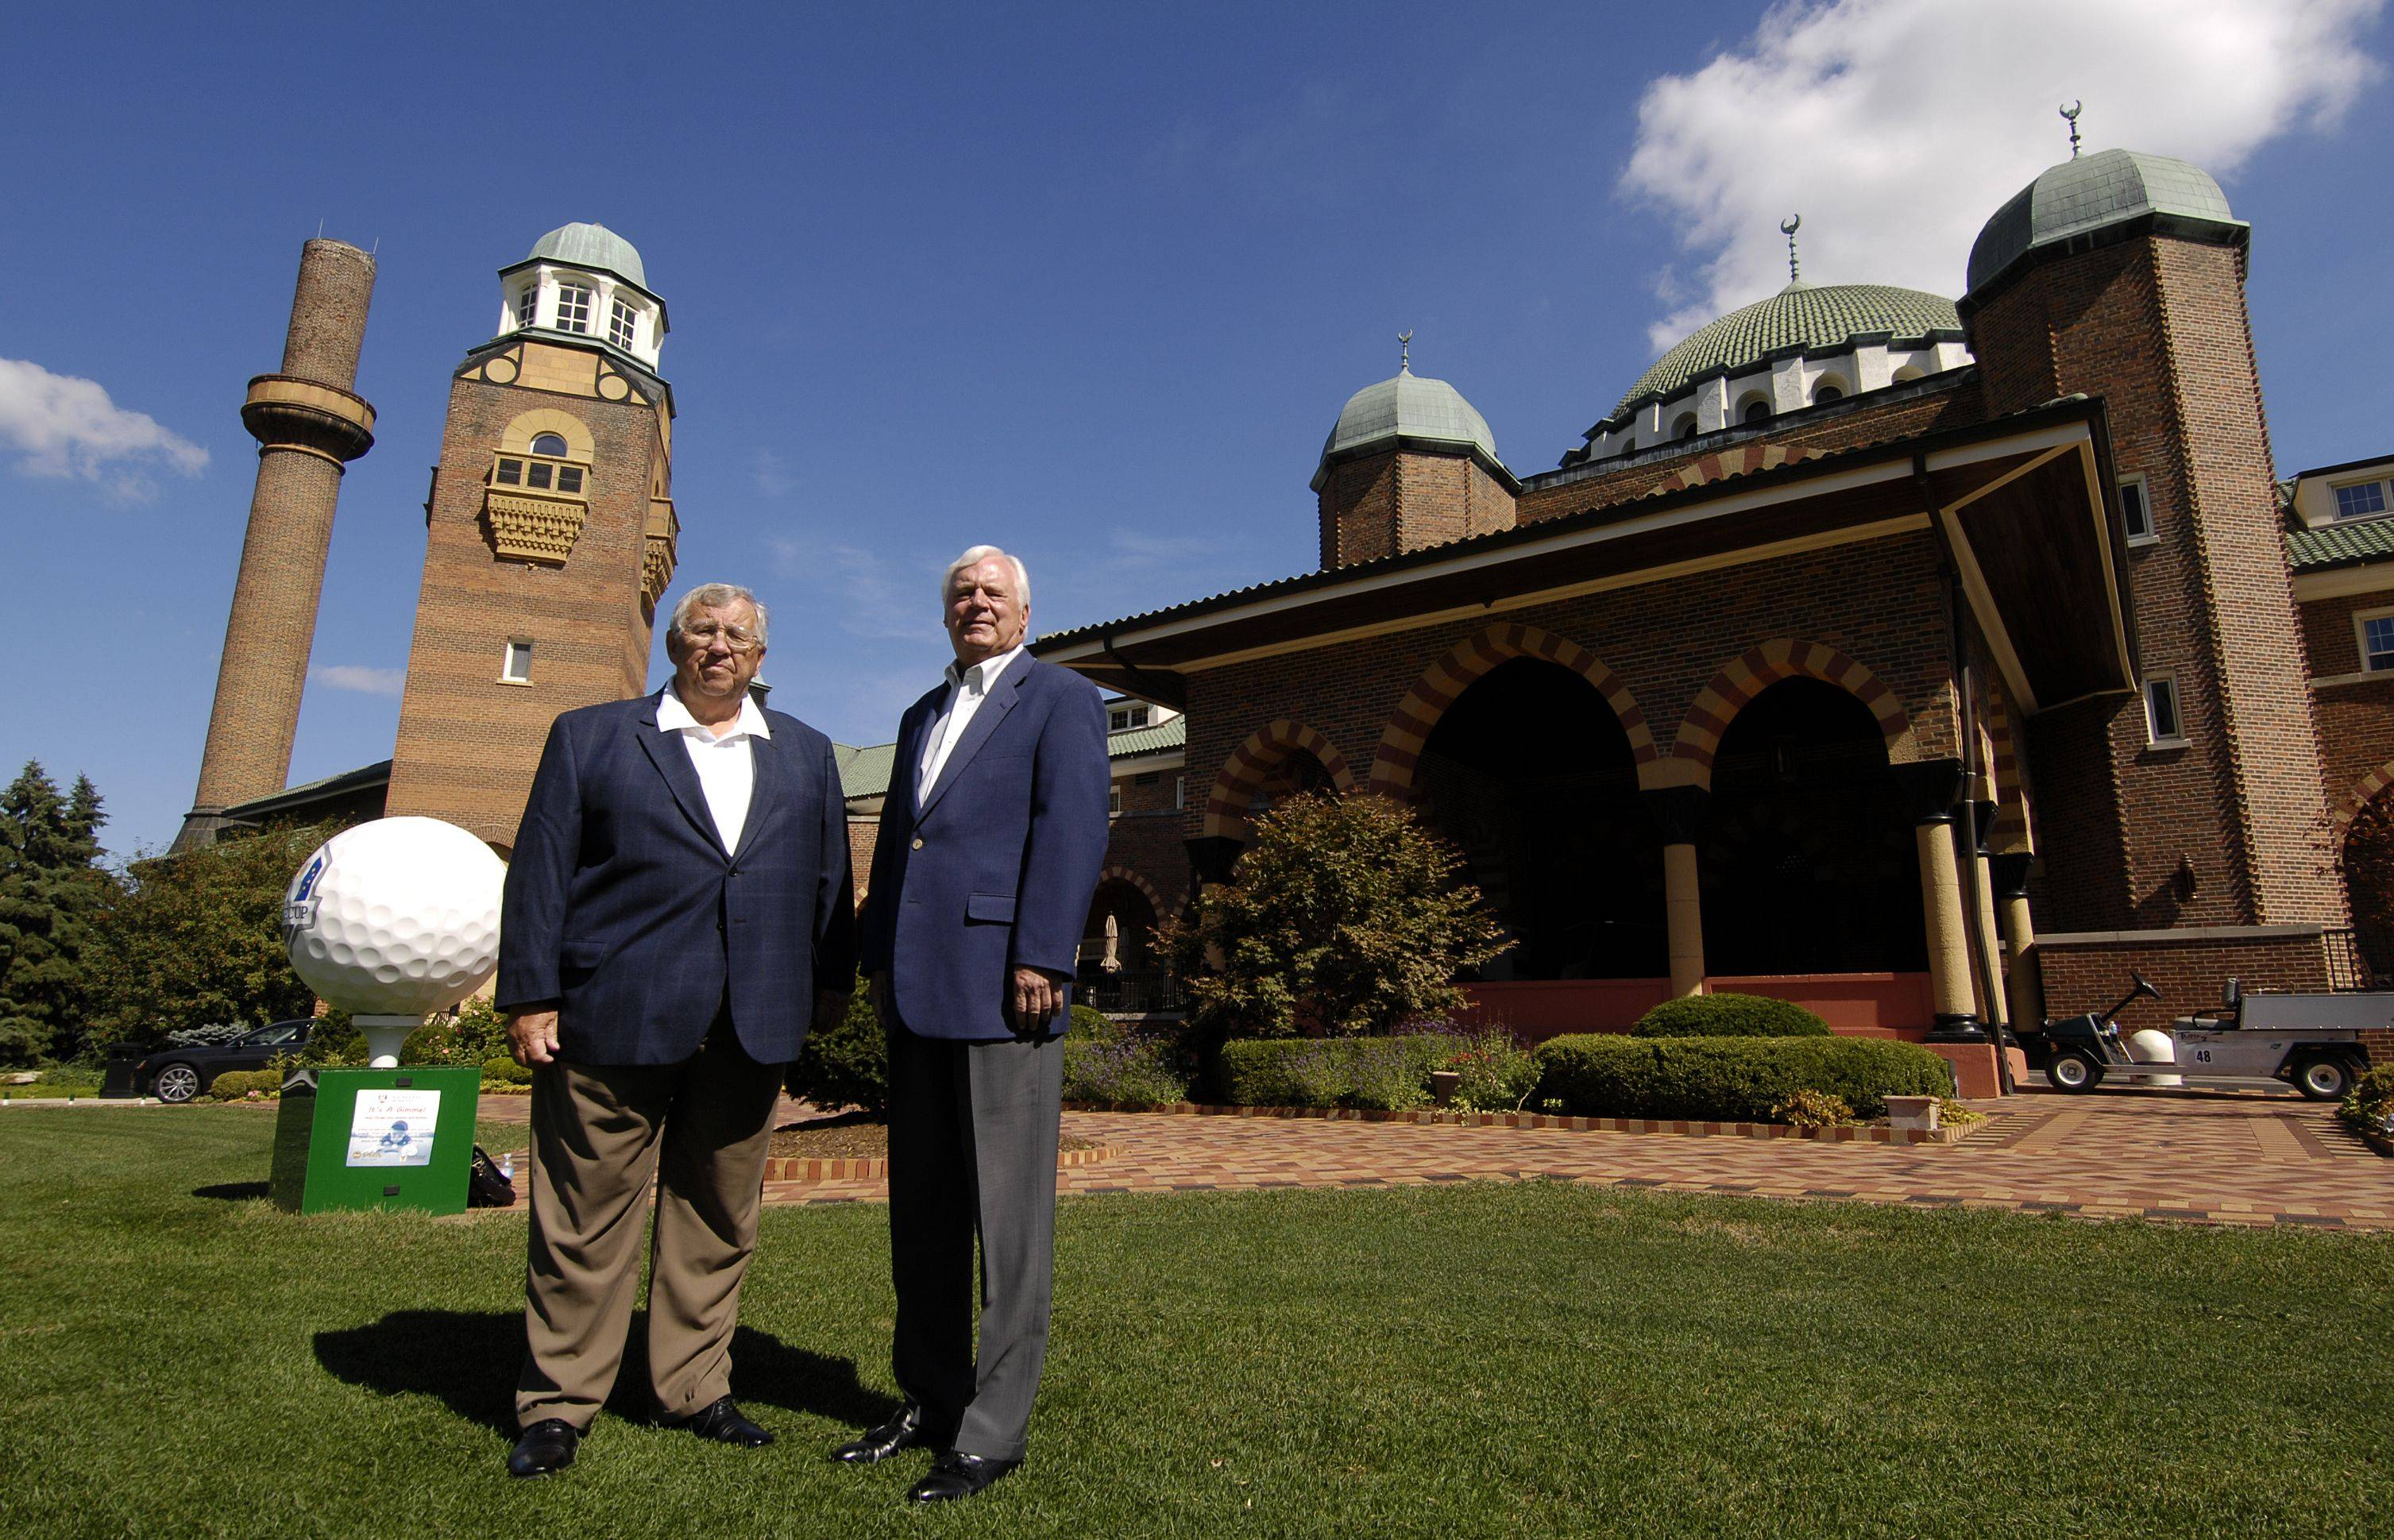 Longtime Medinah Country Club members Alvin Reitz, left, and Calvin Koeppel are serving as club historians during this week's Ryder Cup. Both men have been associated with the prestigious club since they were young.